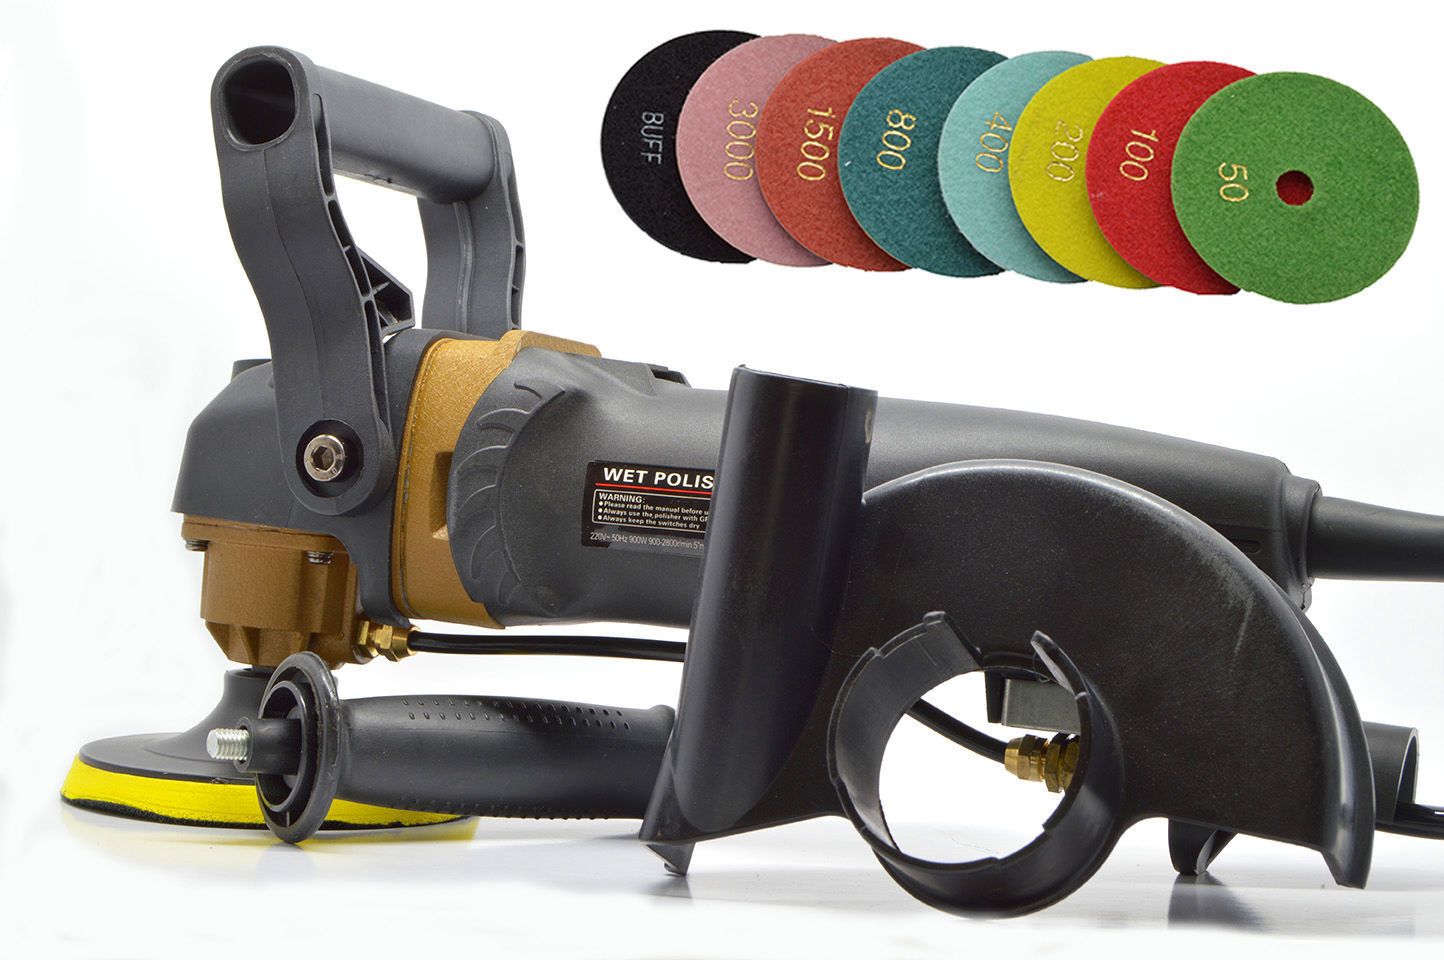 Professional Variable Speed Wet Stone Polisher Grinder 4